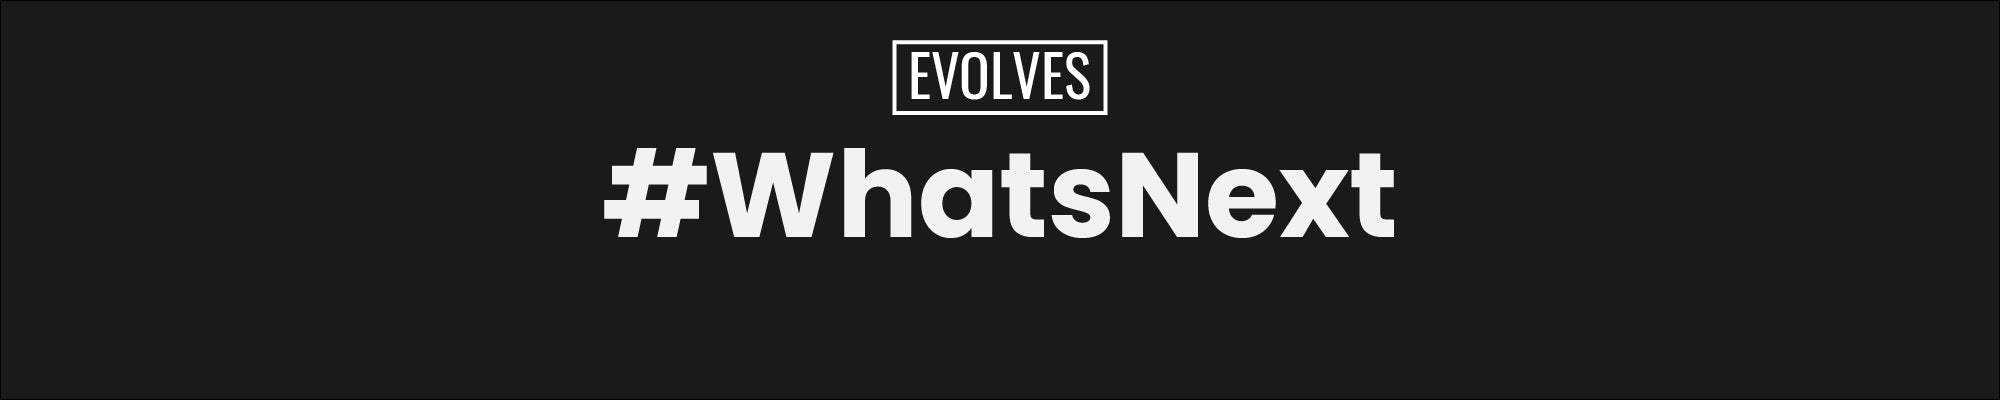 Evolves #WhatsNext Fill the form for exclusive pre launch discounts on new products